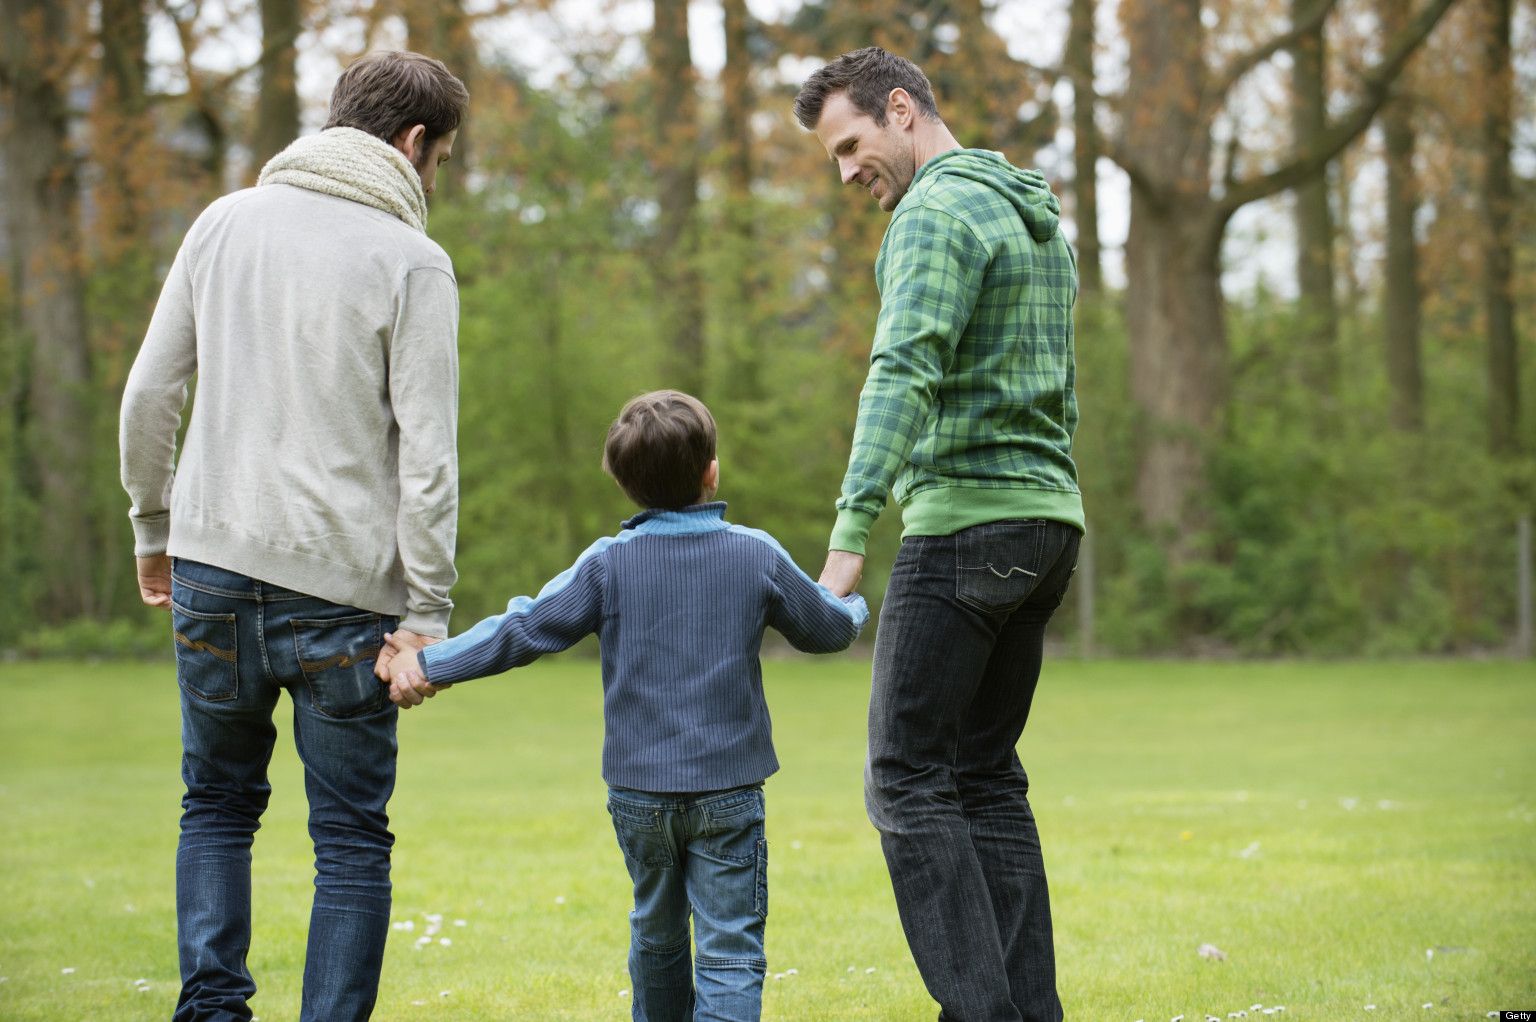 gay parenting effects